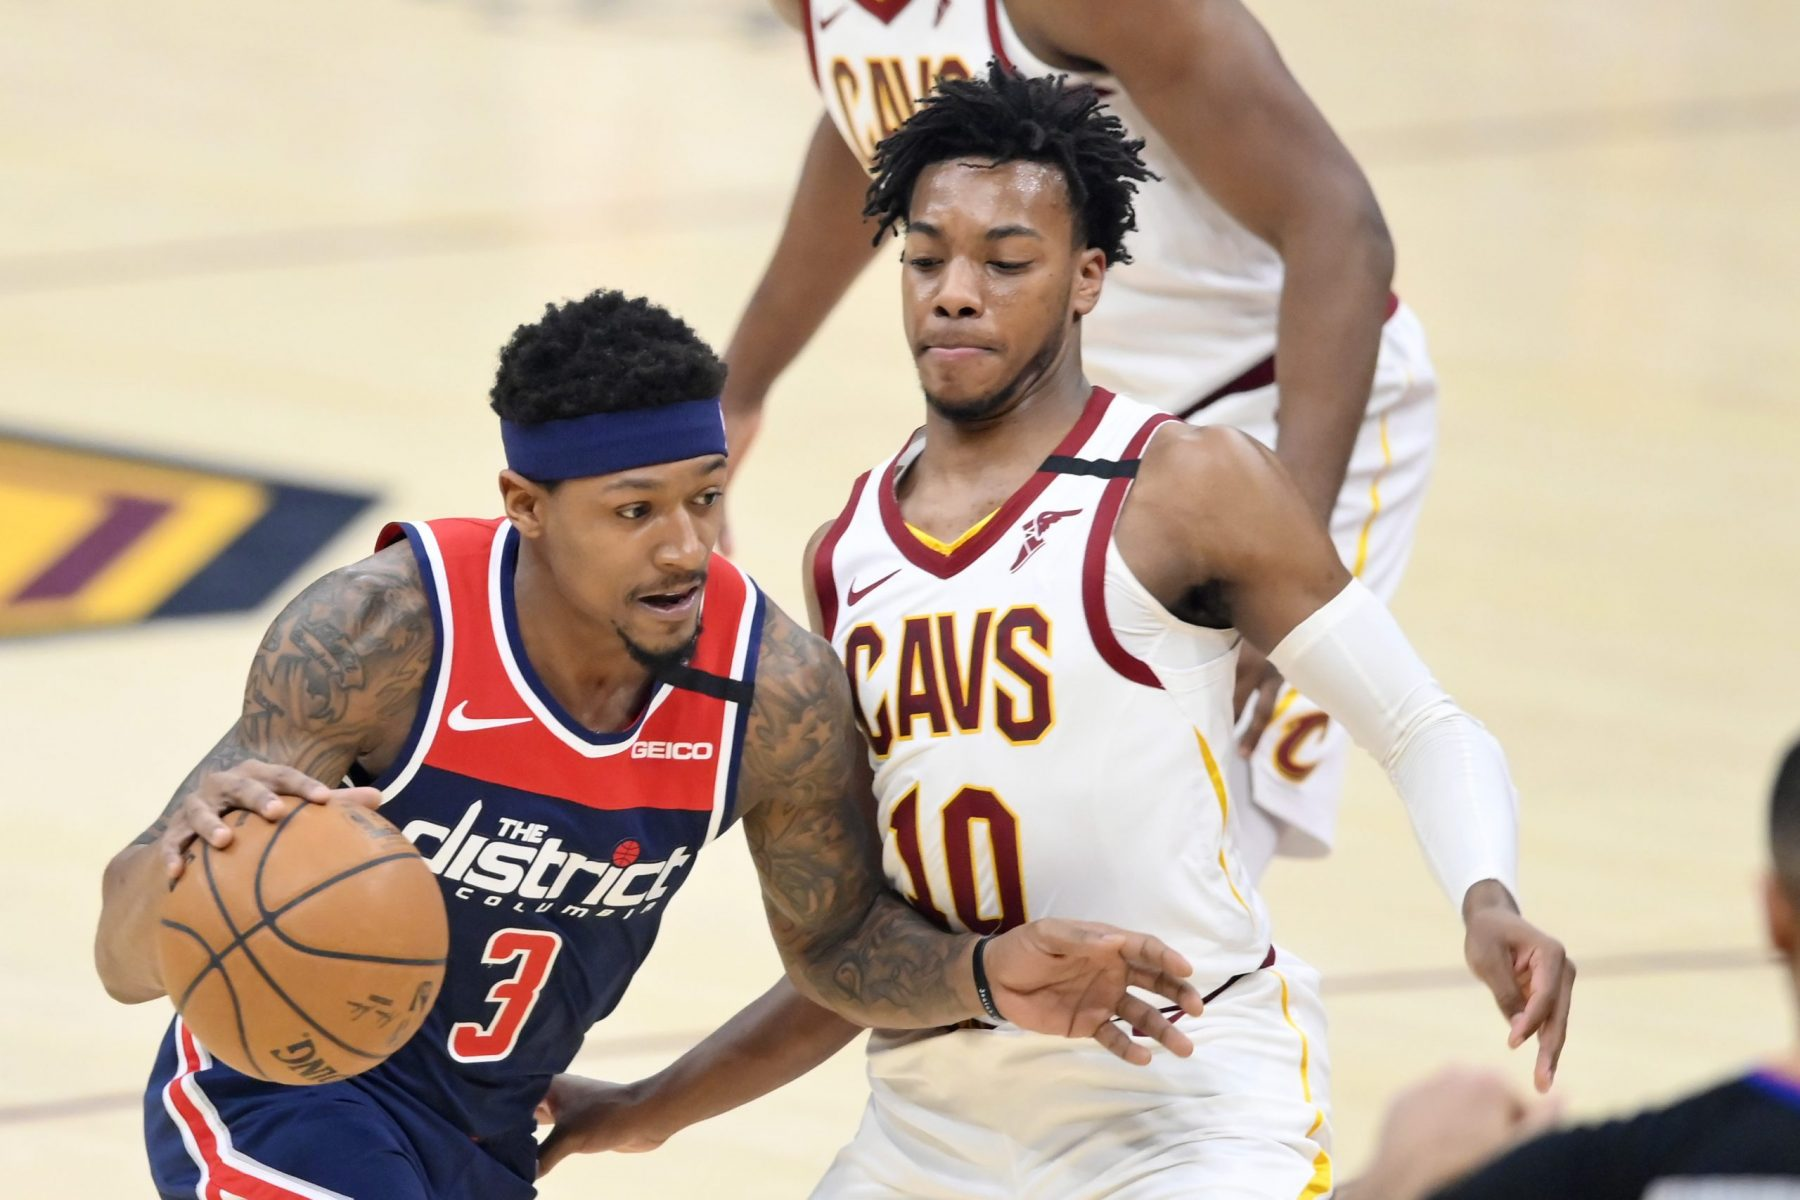 Bradley Beal and Darius Garland